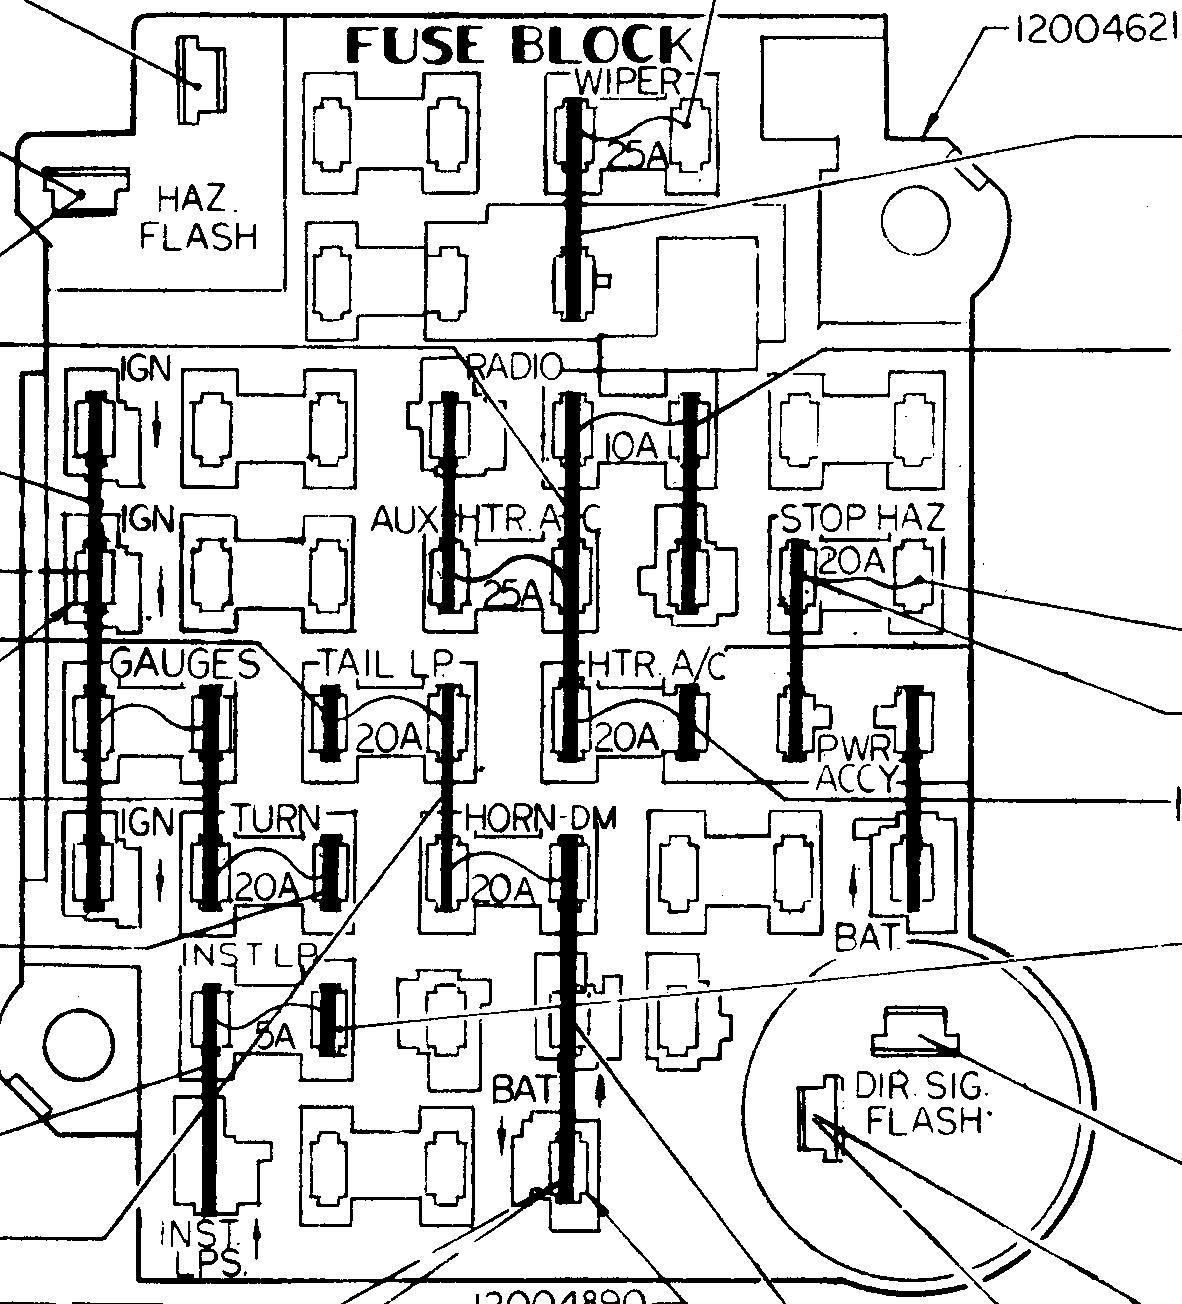 79 Corvette Fuse Box Diagram C3 Corvette Fuse Box